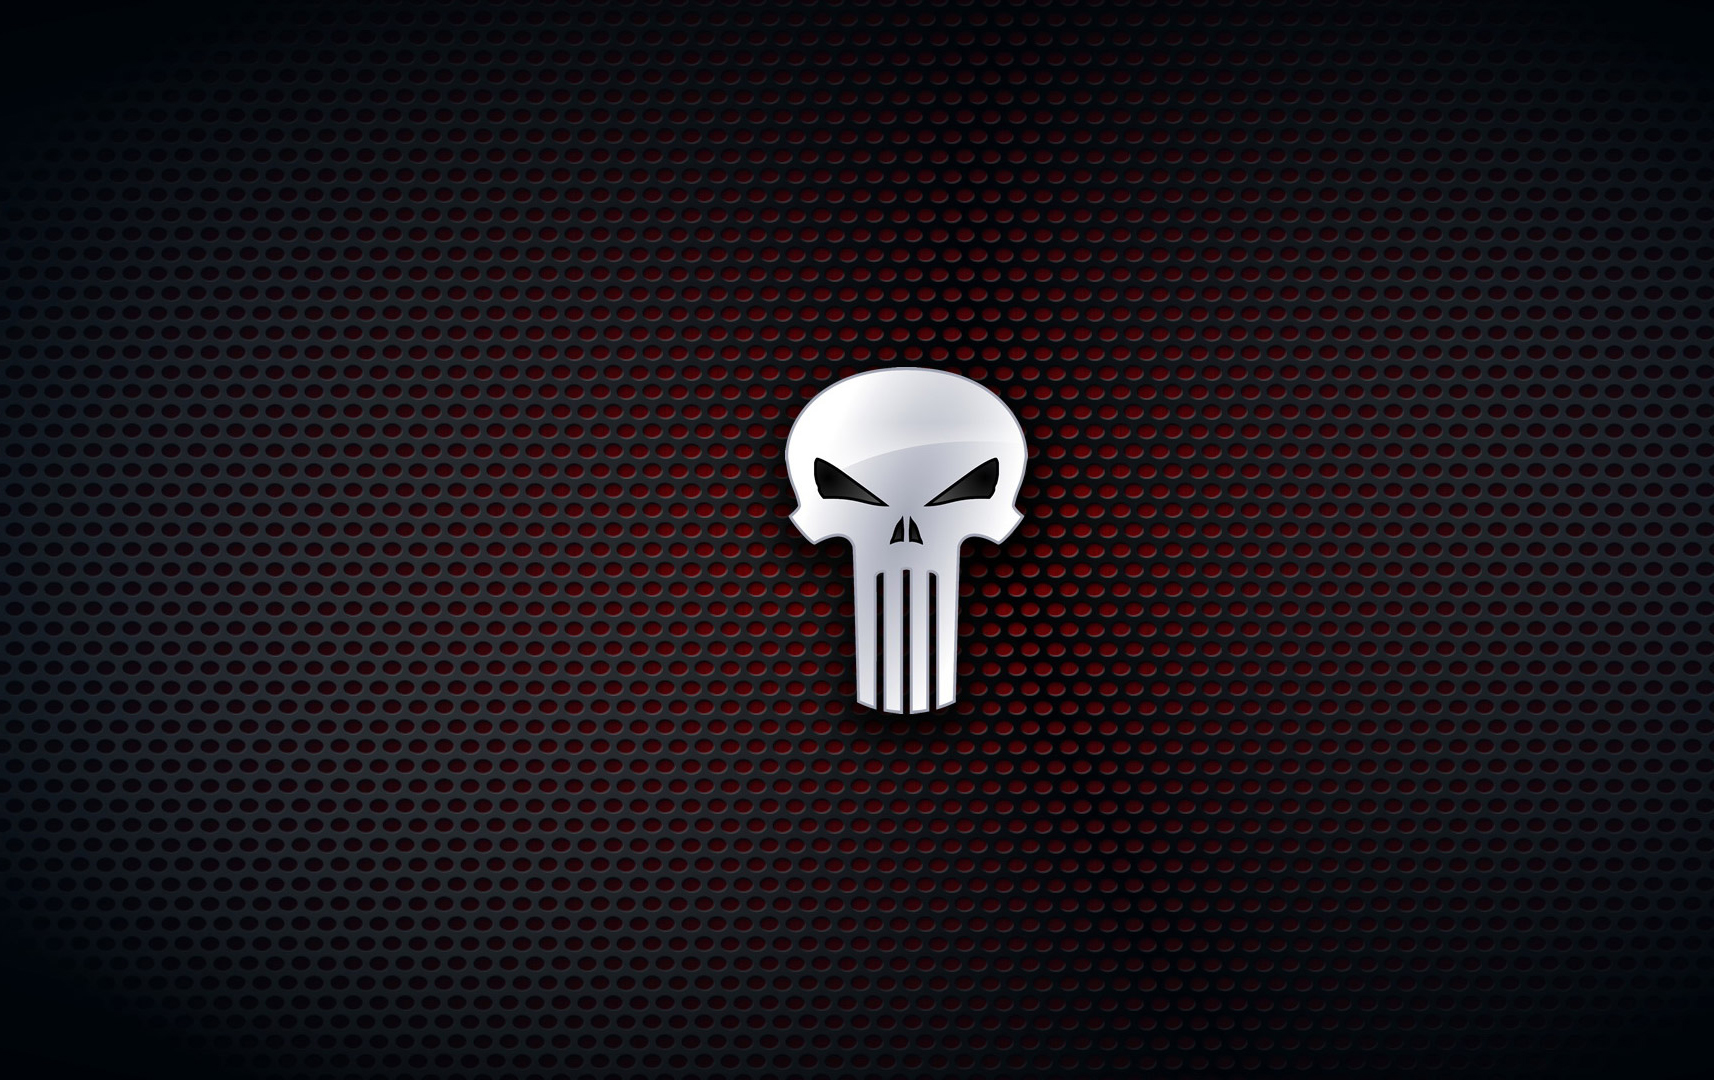 punisher logo wallpapers - photo #37